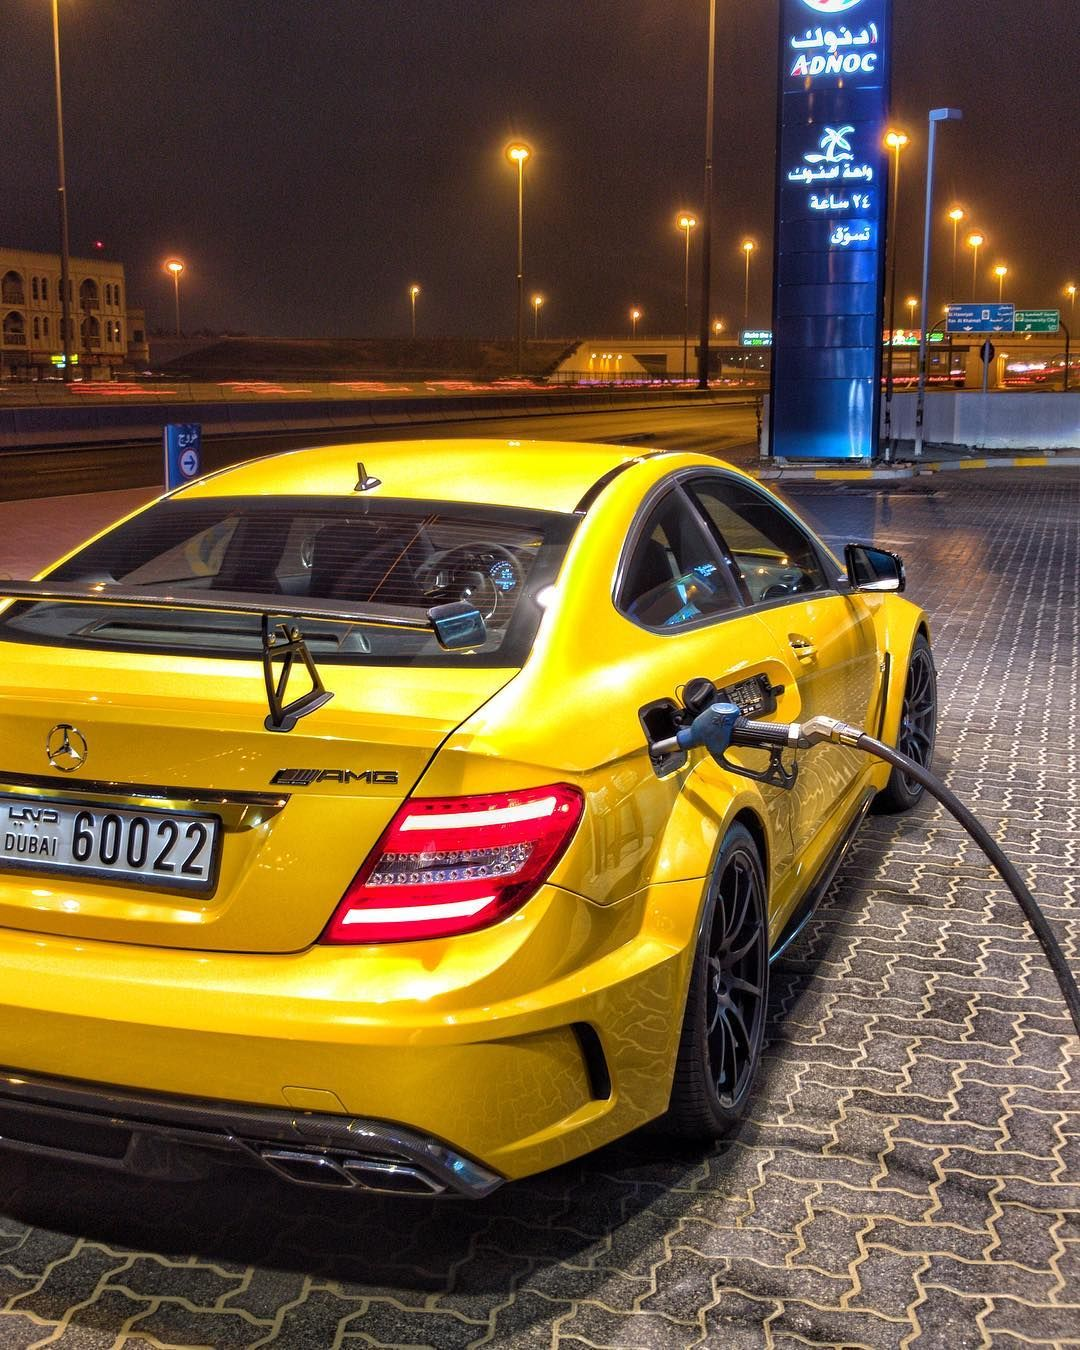 "Pin By Mohammed Faisal On Mercedes Benz Amg With Images: FaiSaL MoHaMeD On Instagram: ""He's Always Thirsty 💦 ⛽️"